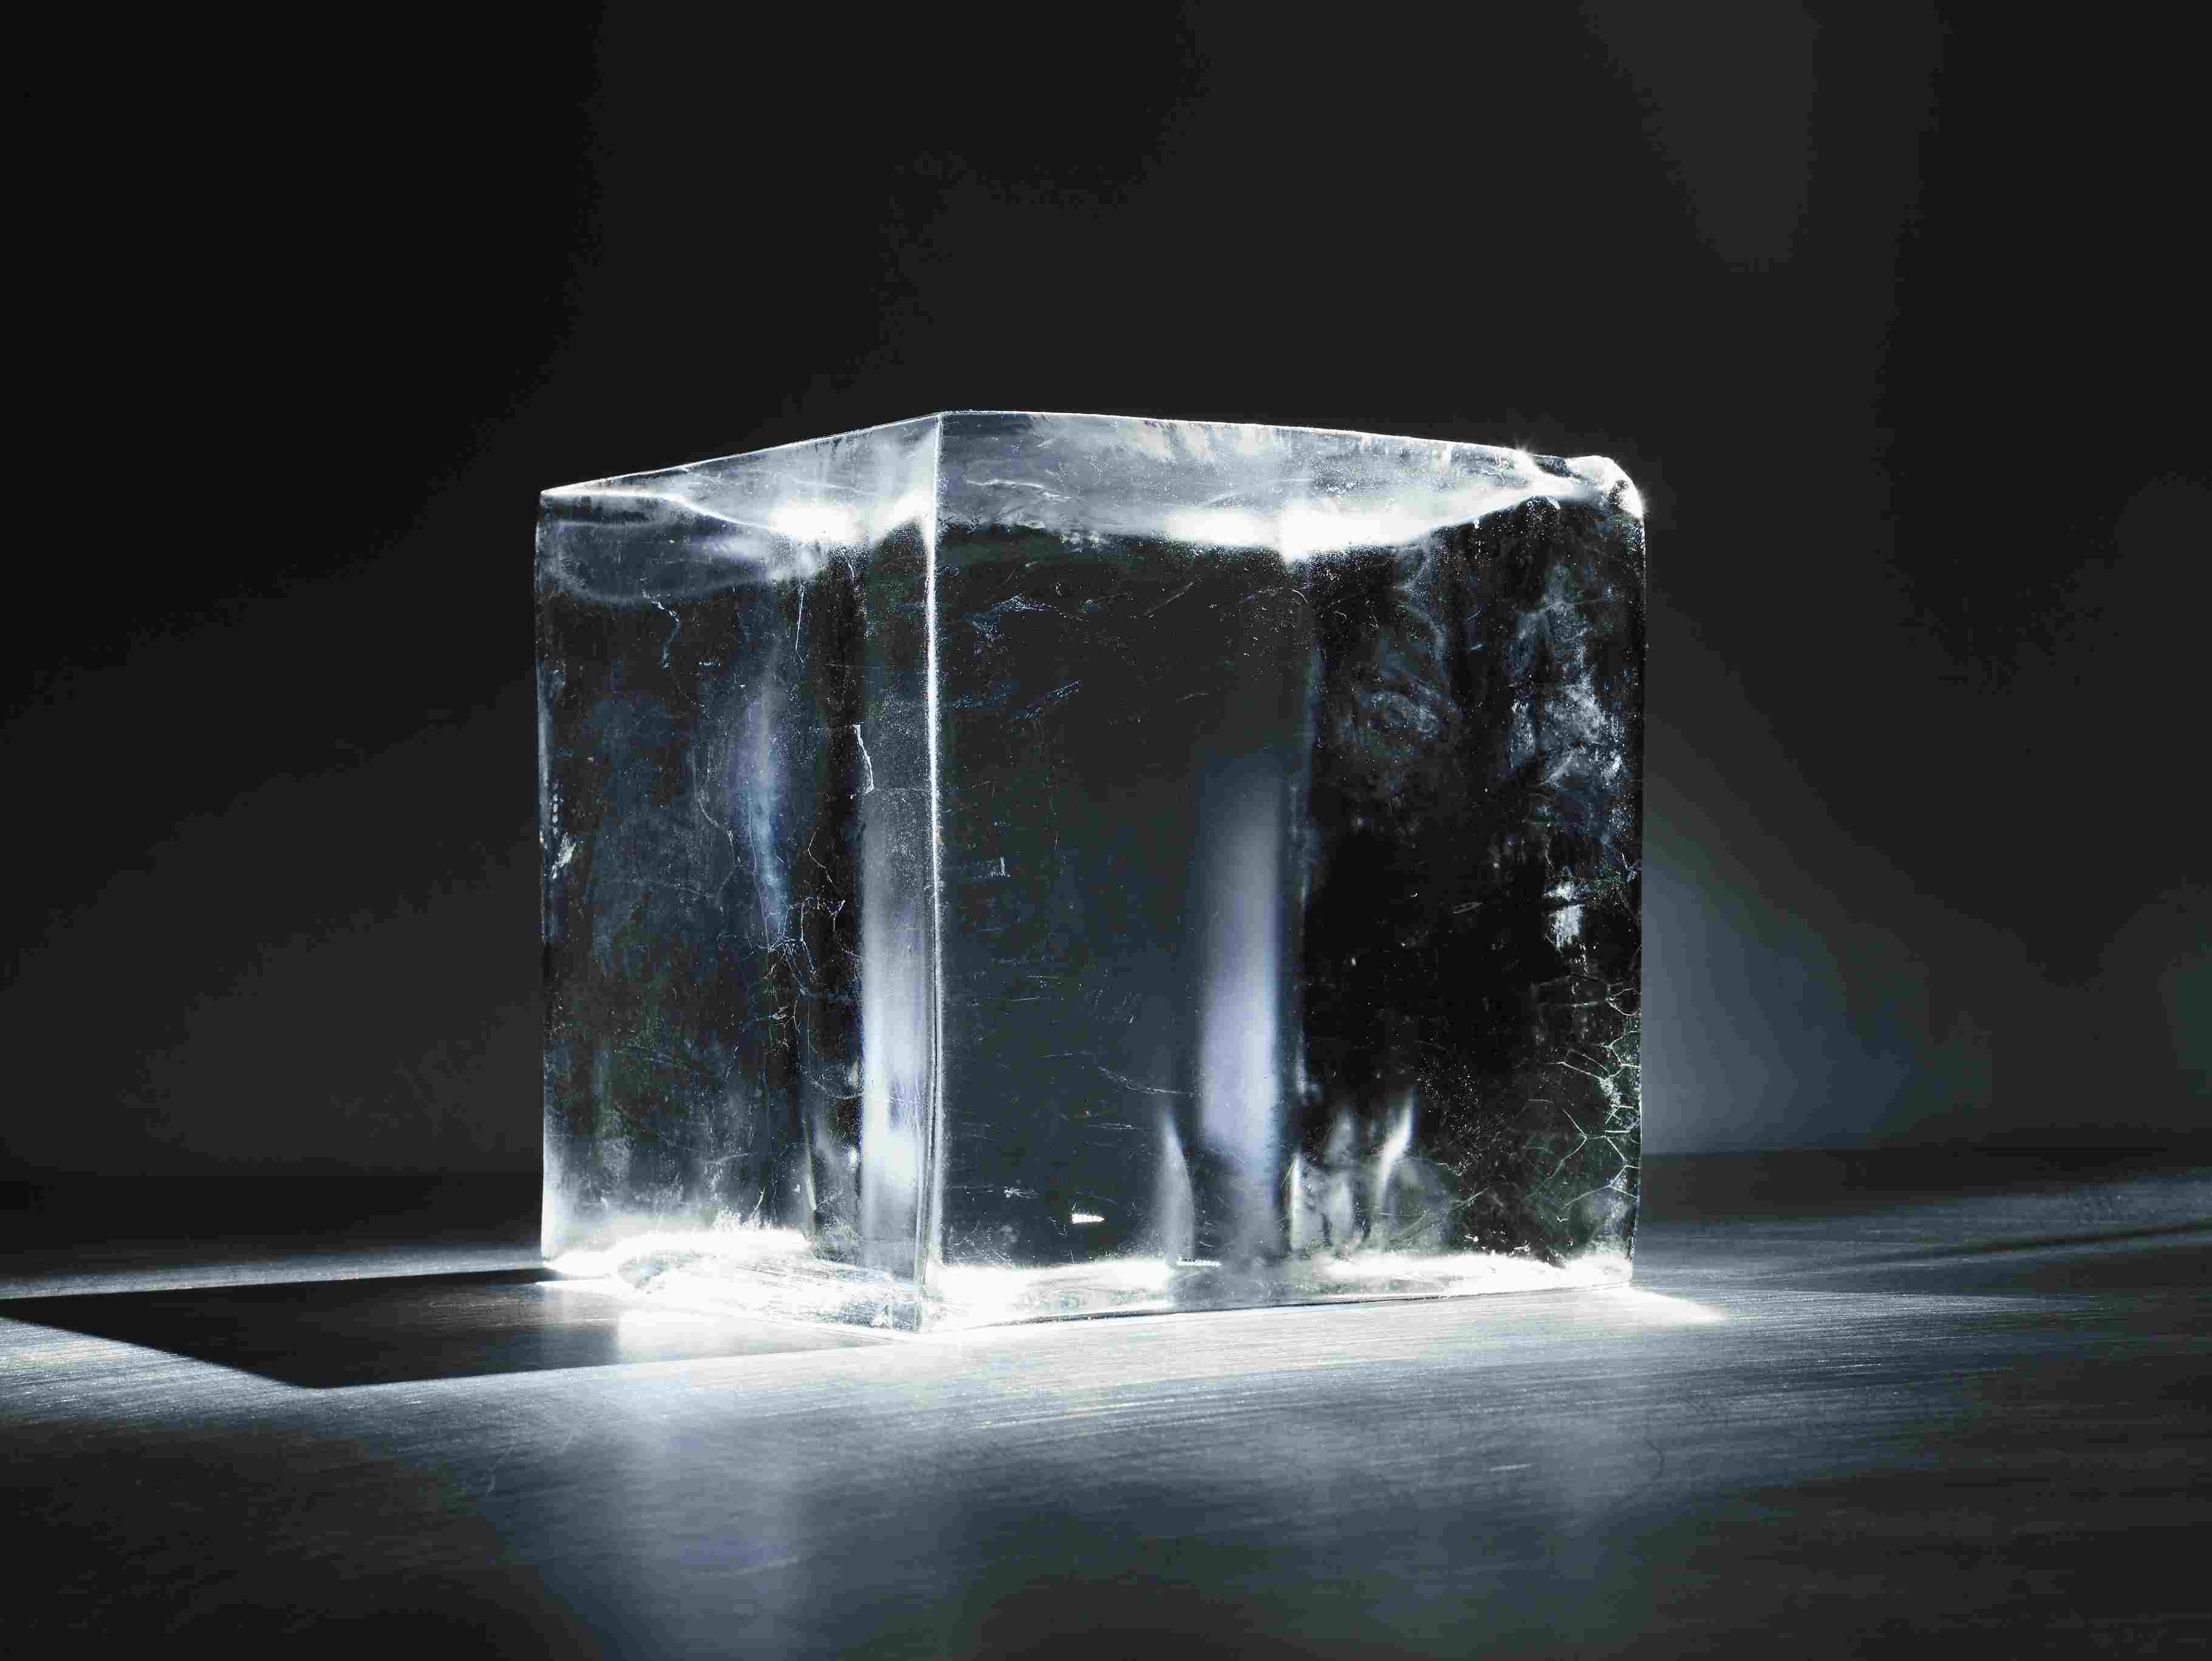 The rate at which ice forms from water depends on its starting temperature, but sometimes hot water freezes more quickly than cold water.